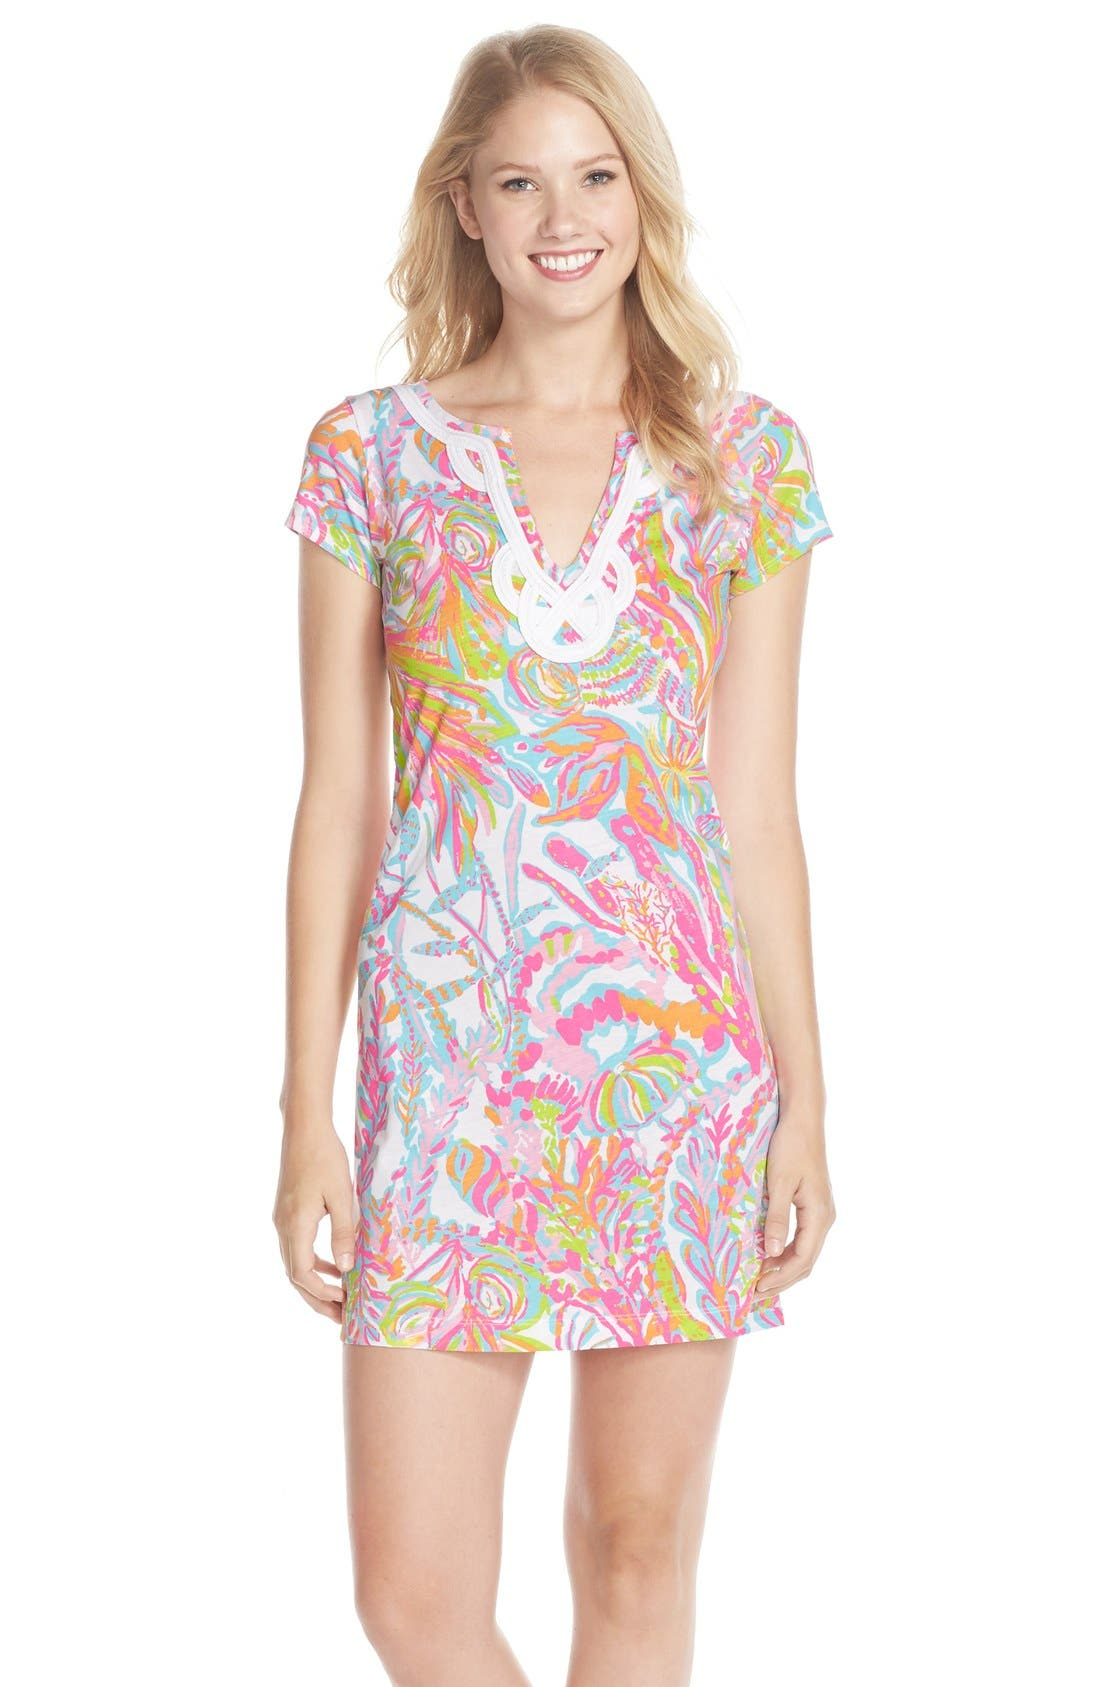 Alternate Image 1 Selected - Lilly Pulitzer® 'Brewster' Contrast Trim Print T-Shirt Dress